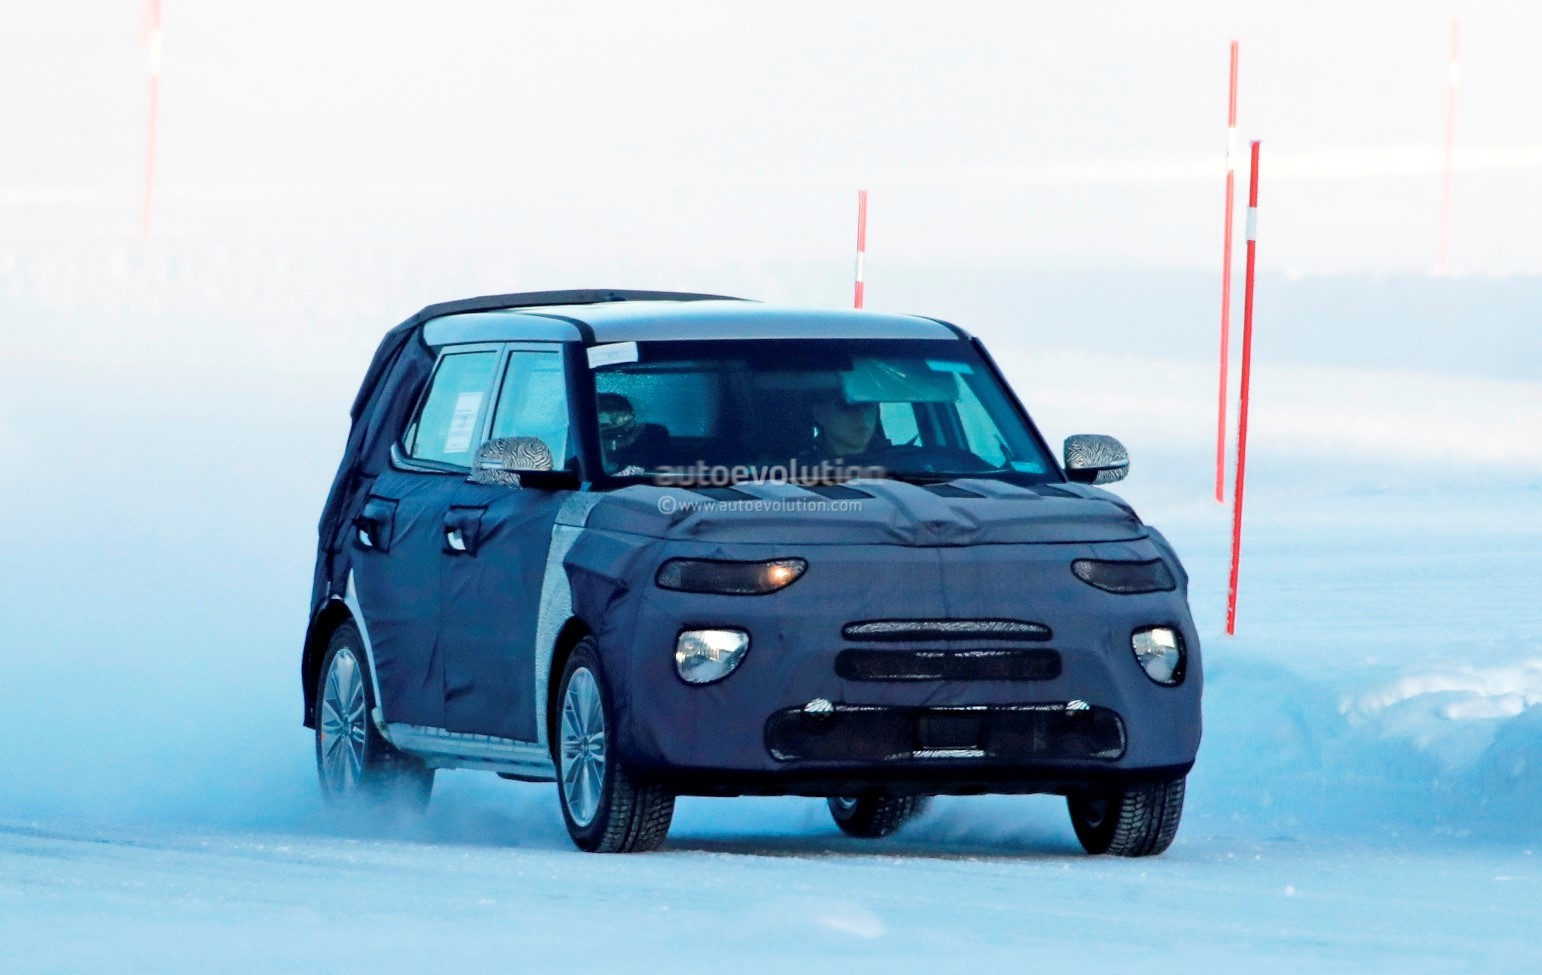 2020 Kia Soul Ev To Share Platform With Hyundai Kona